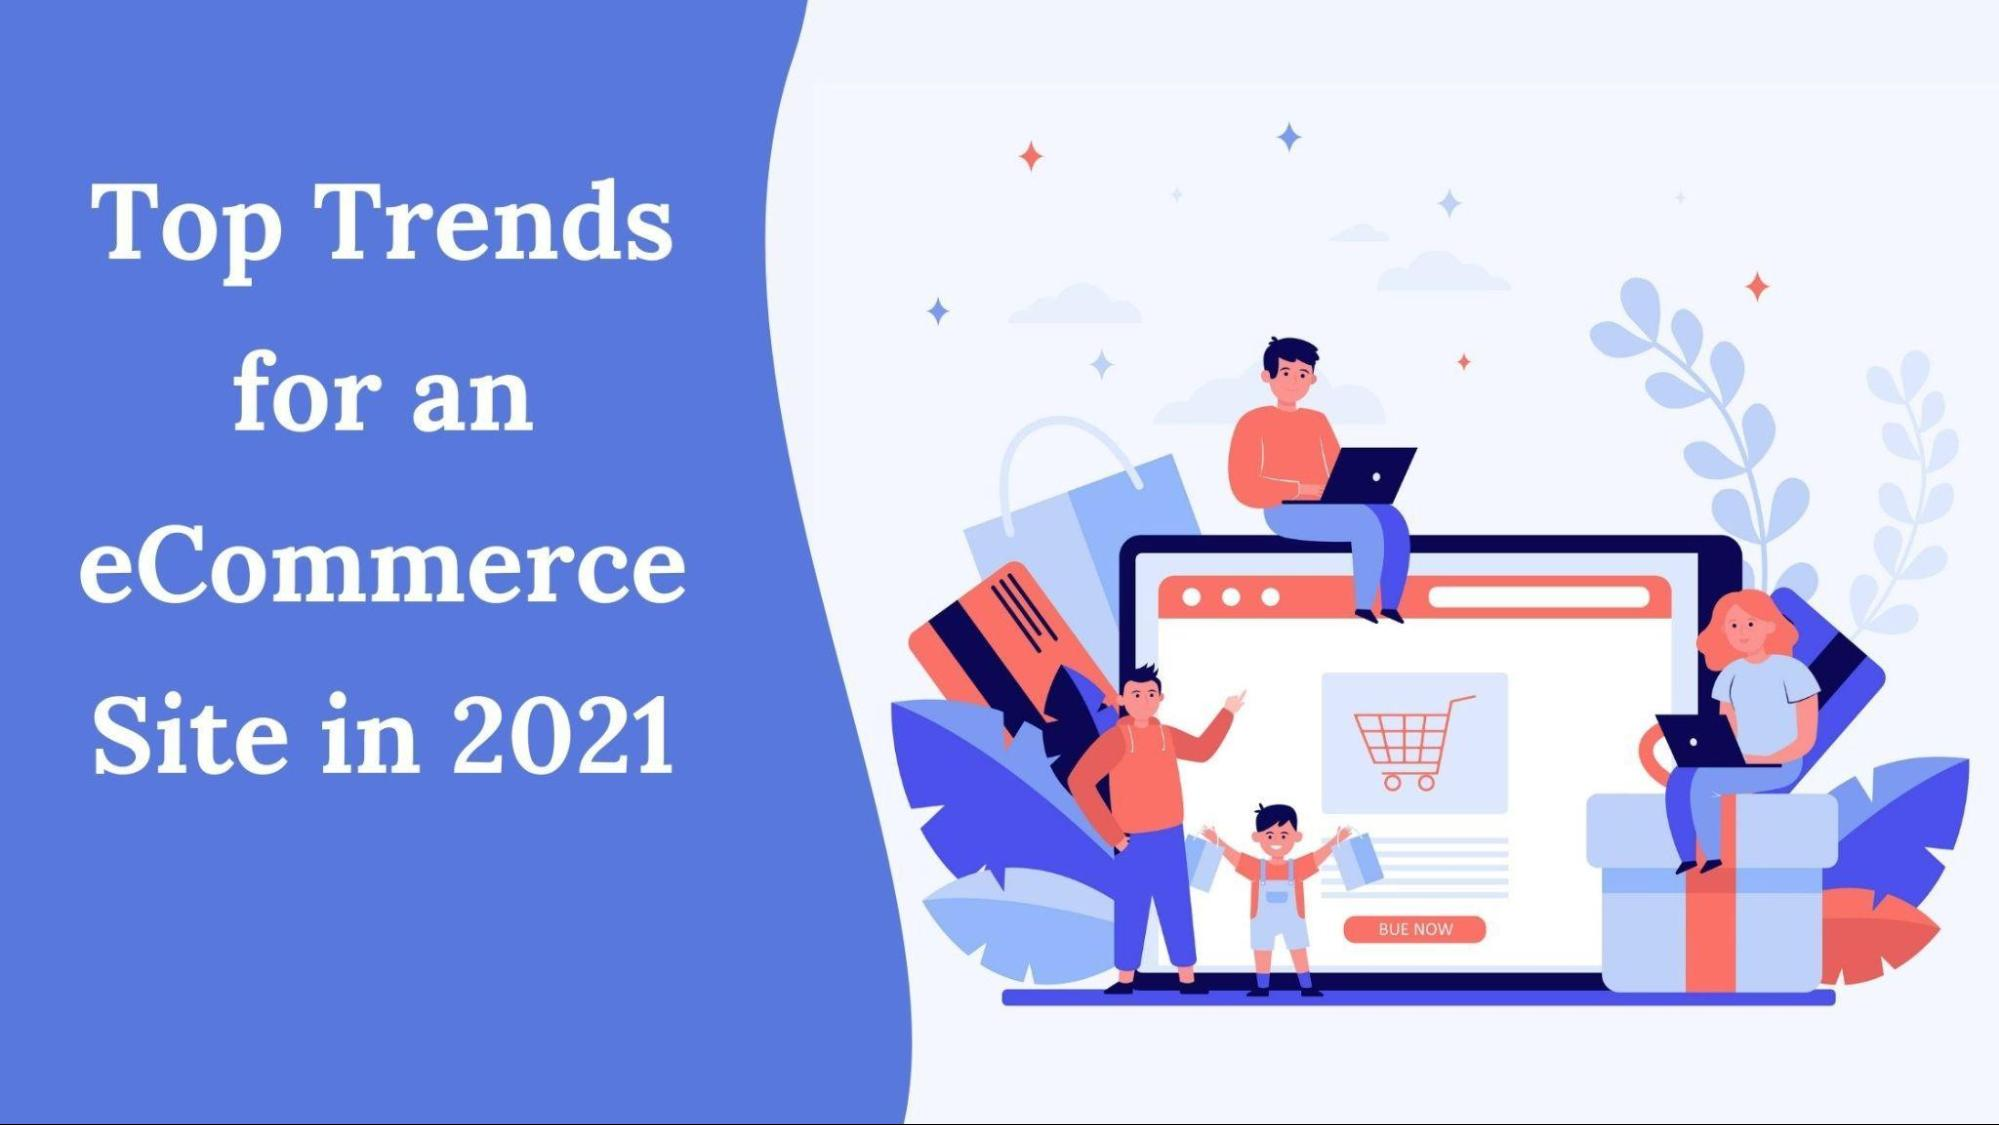 Top Trends for an eCommerce Site in 2021